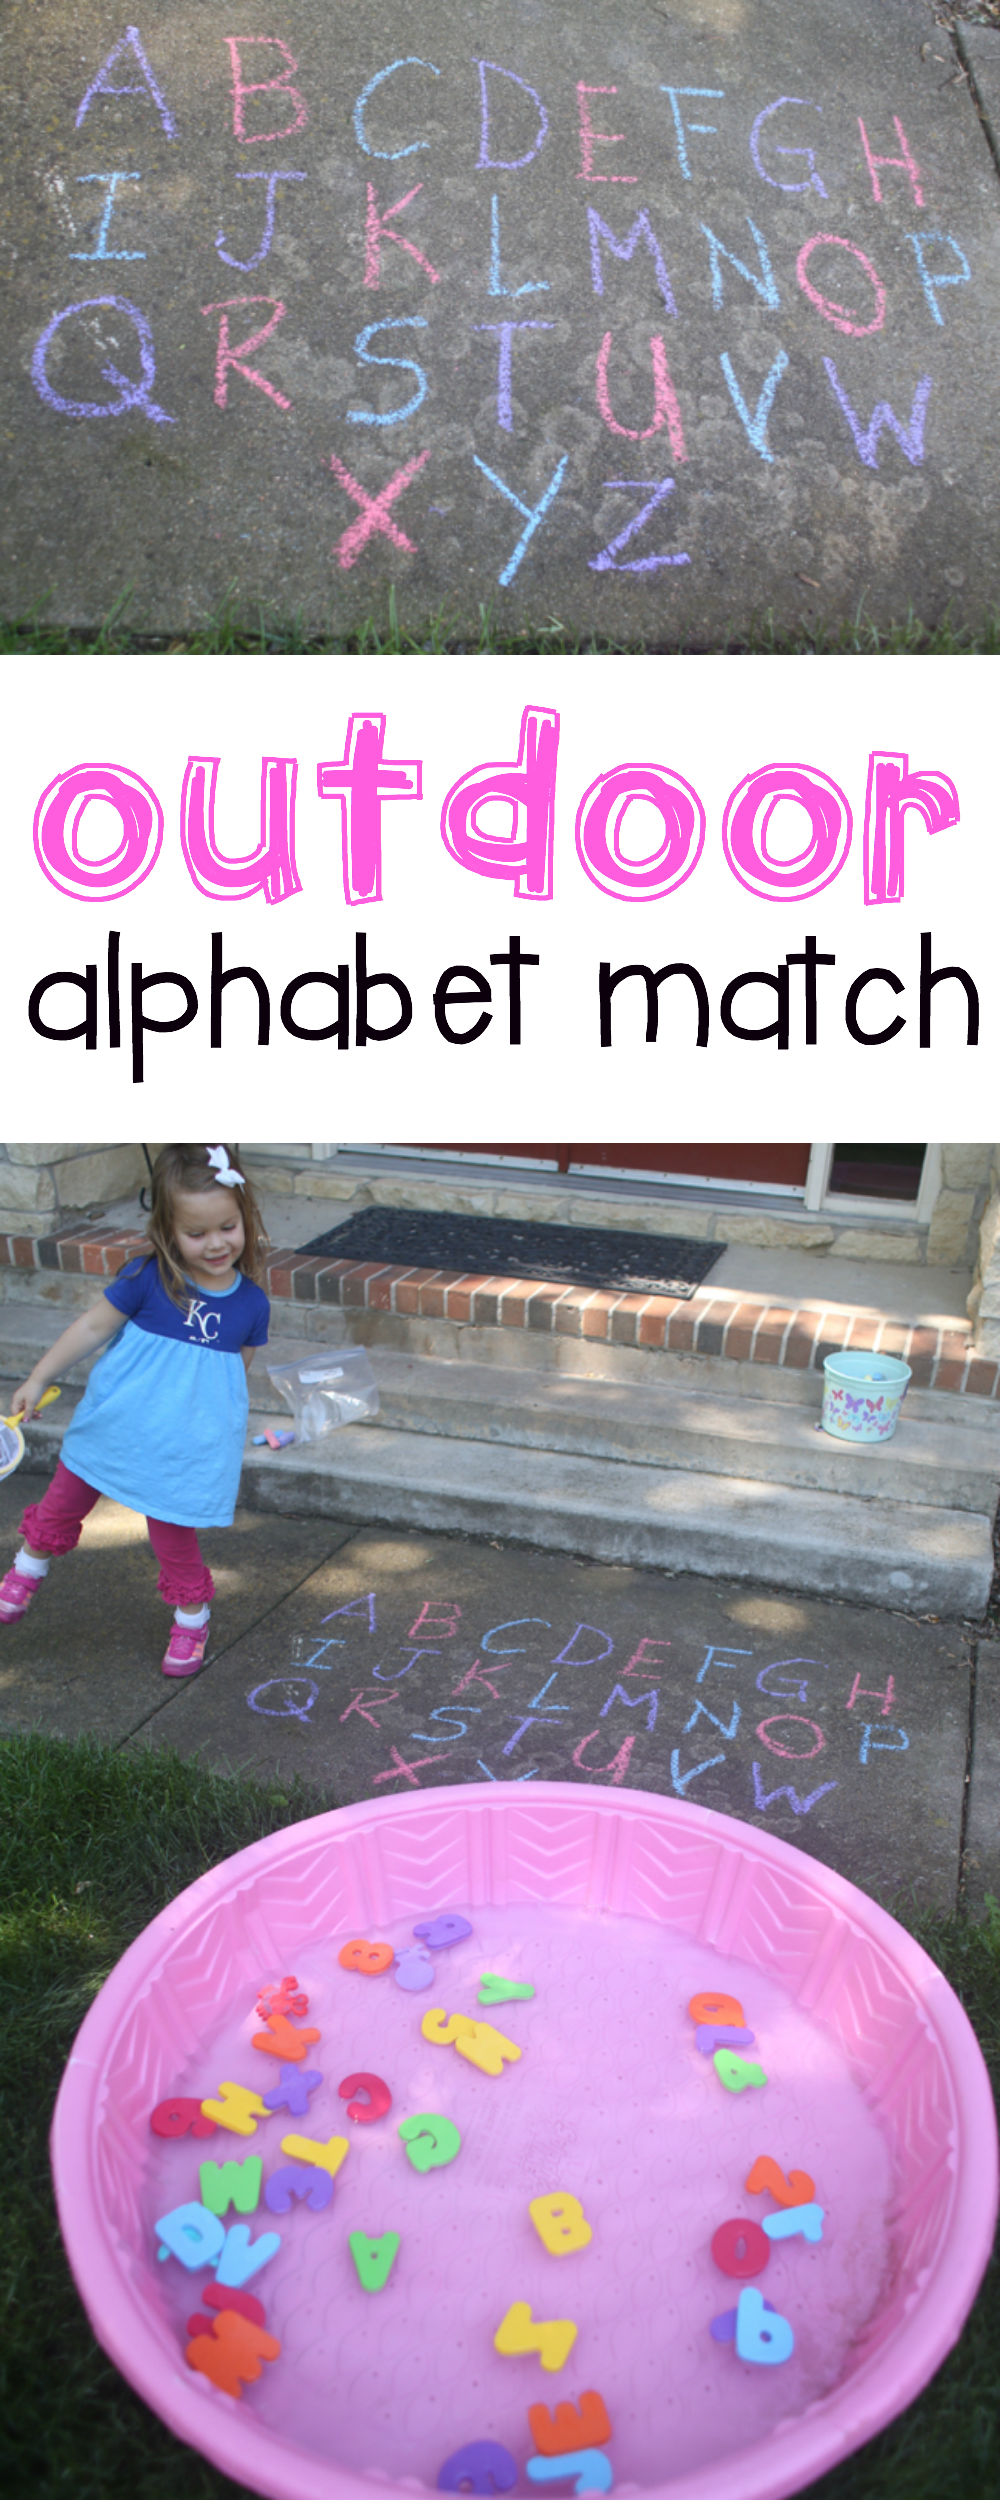 Outdoor alphabet match for toddlers pinterest fun activities maybe up the game with sight words outdoor alphabet match for toddlers such a fun activity for teaching letter recognition to toddlers and preschoolers spiritdancerdesigns Choice Image